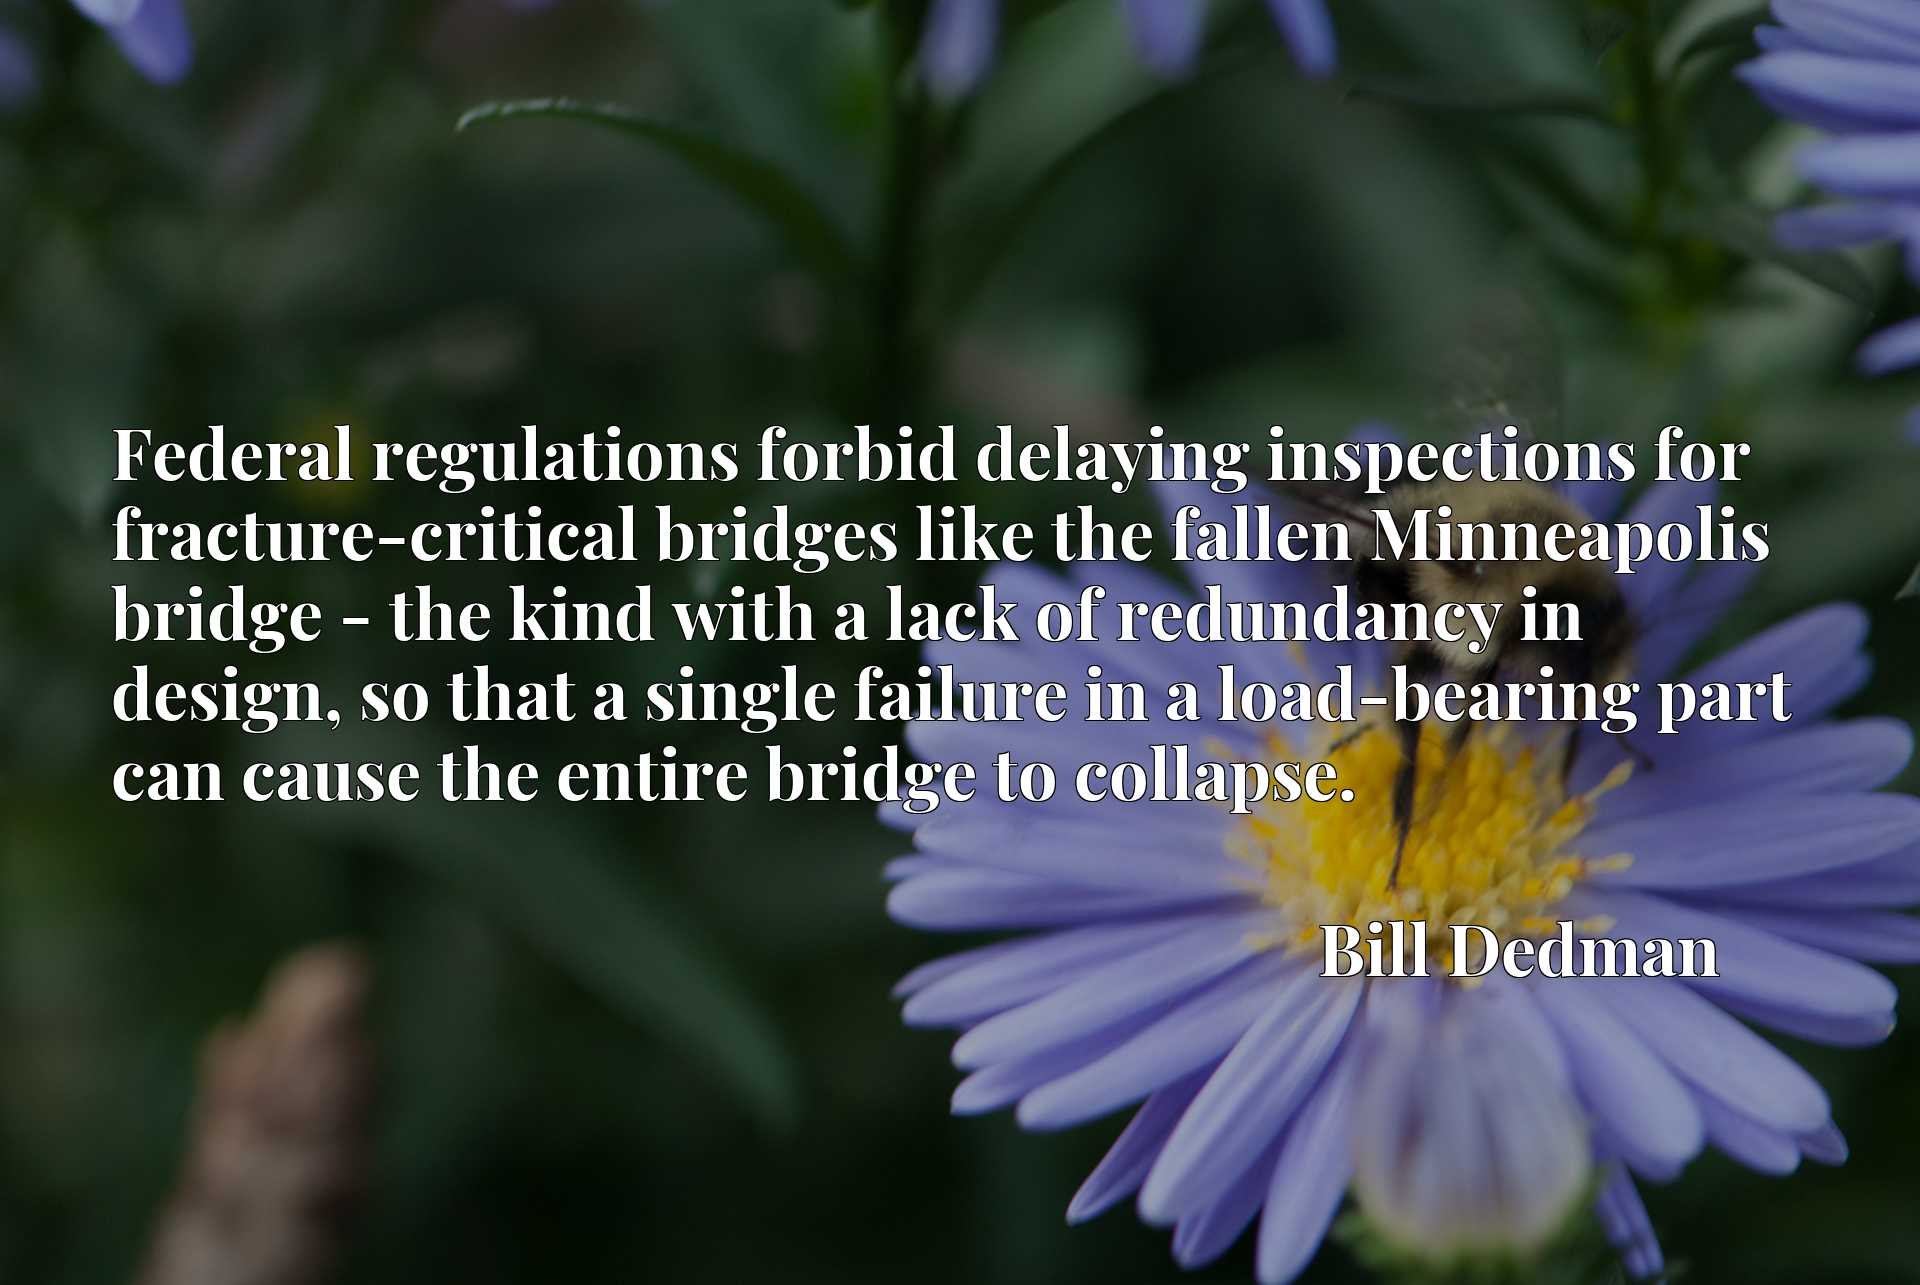 Federal regulations forbid delaying inspections for fracture-critical bridges like the fallen Minneapolis bridge - the kind with a lack of redundancy in design, so that a single failure in a load-bearing part can cause the entire bridge to collapse.